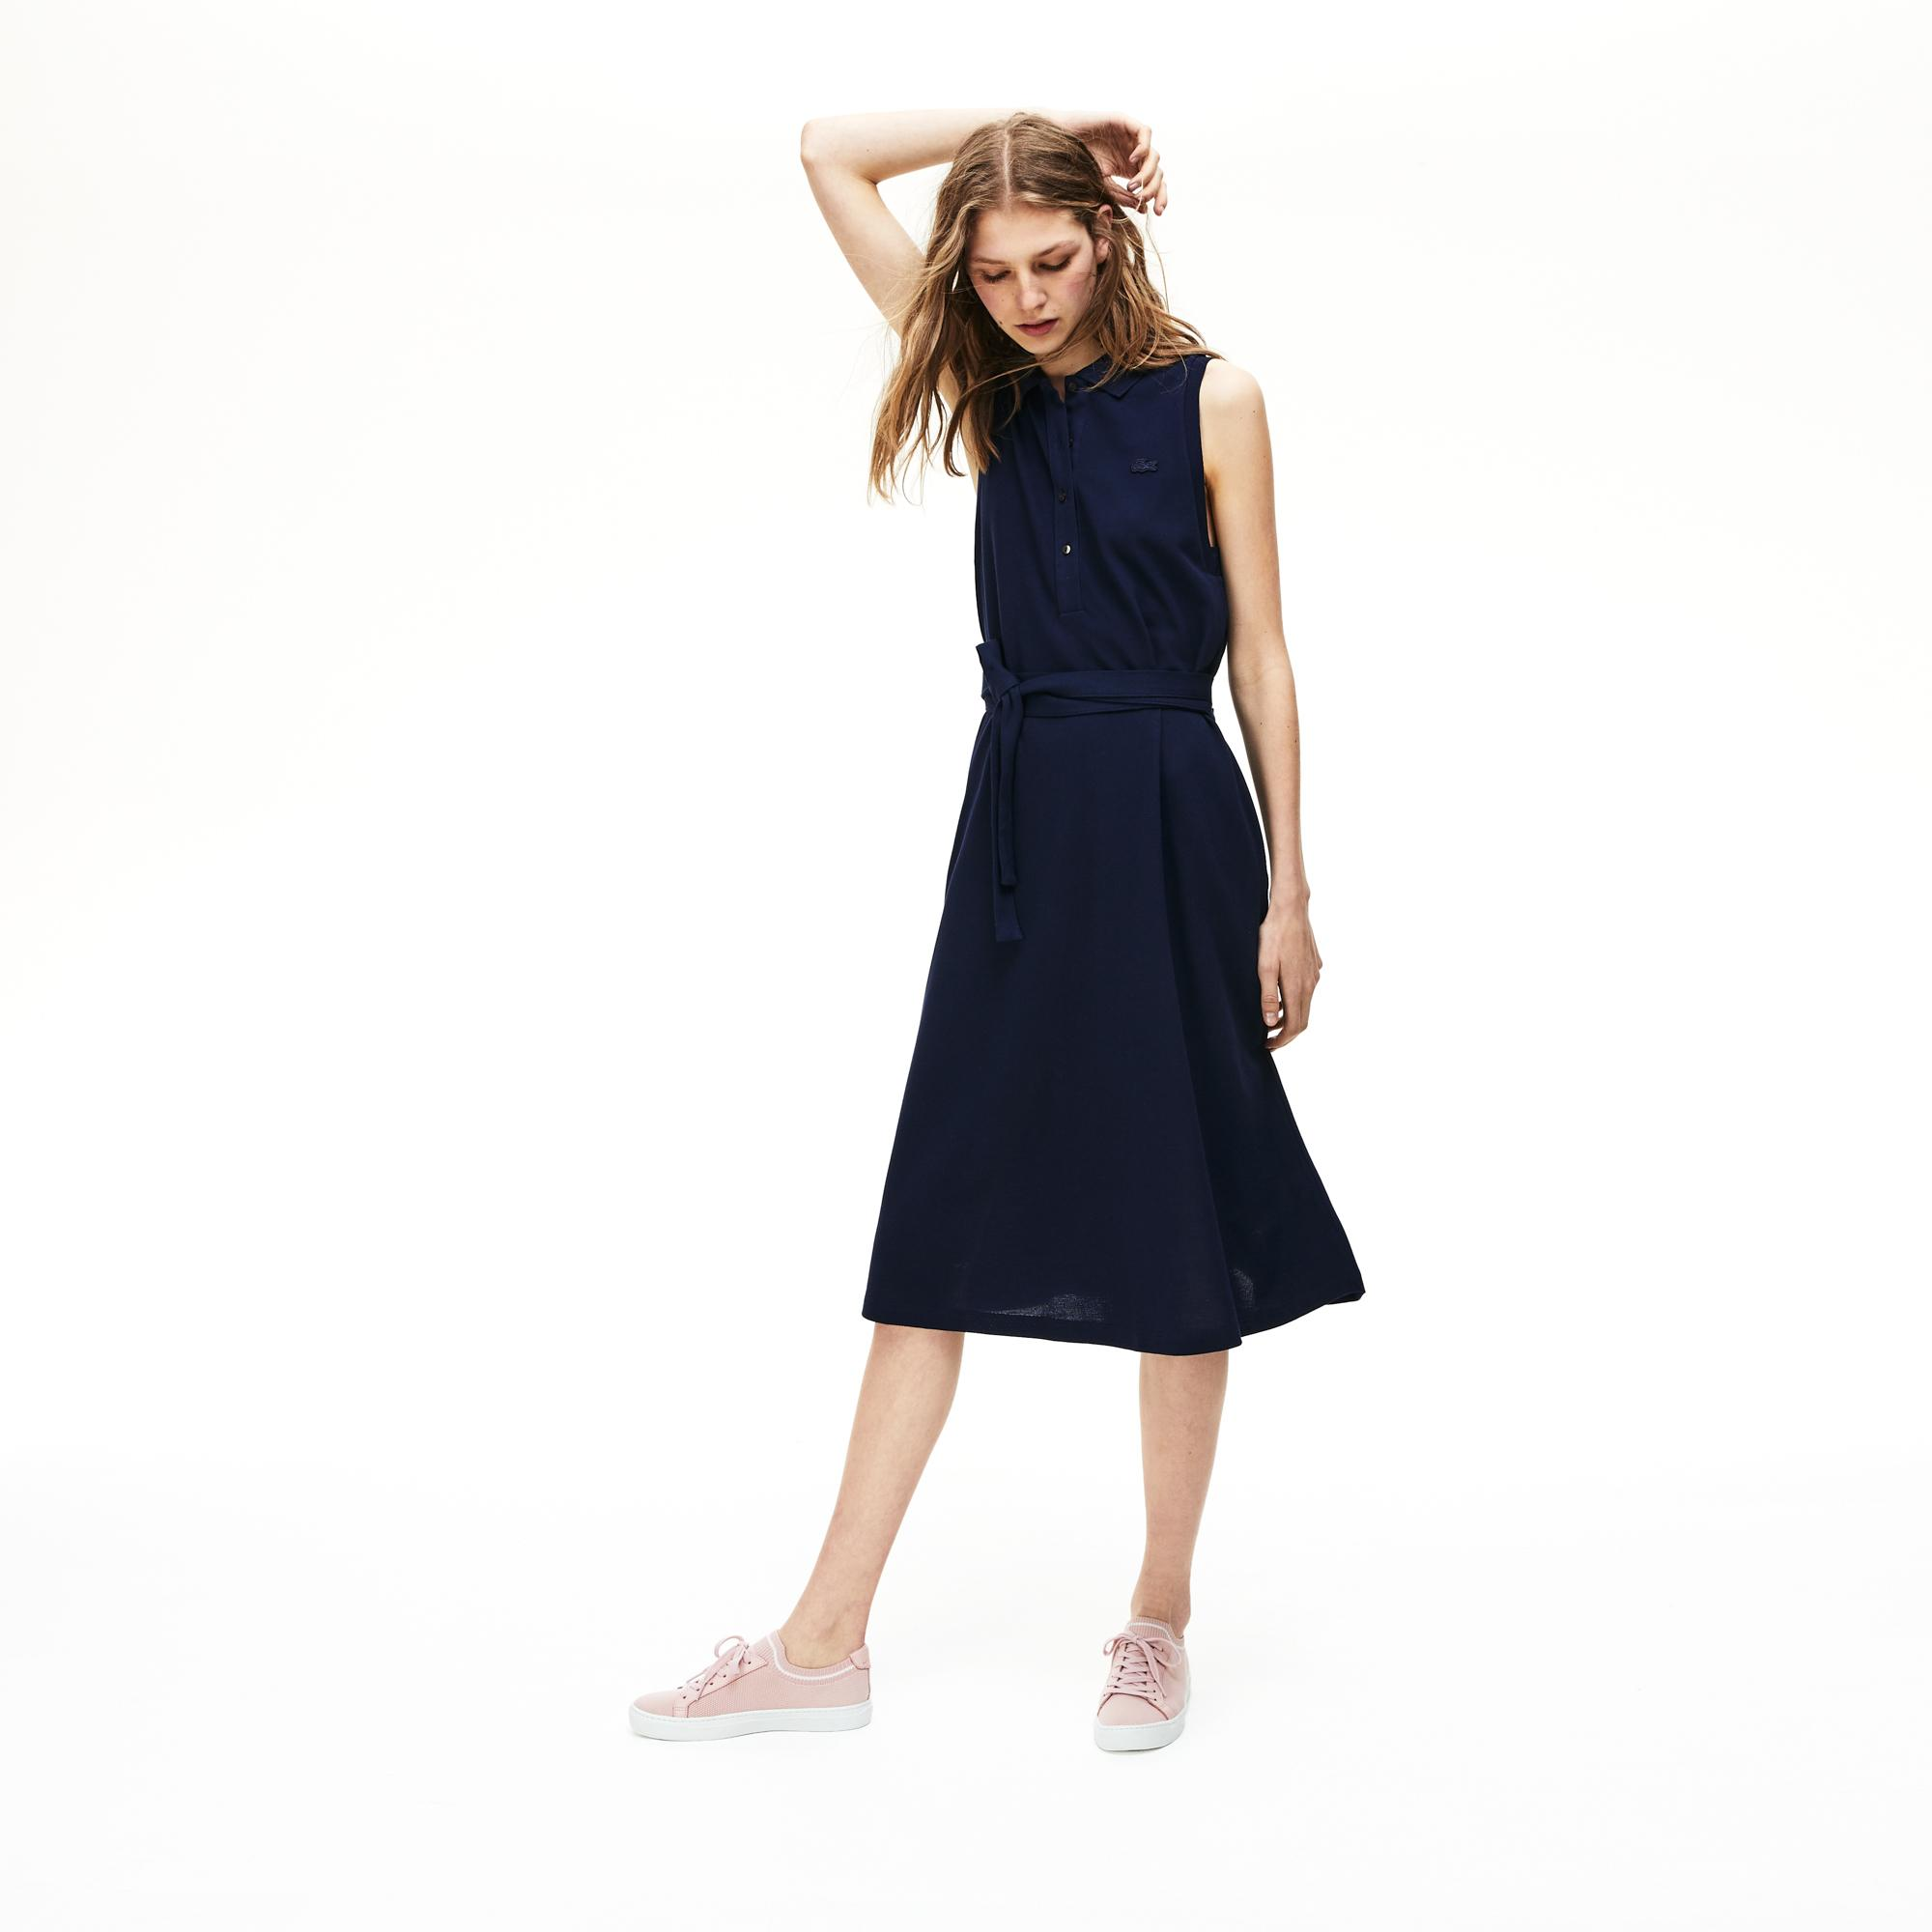 Lacoste Women's Piqué Polo Dress